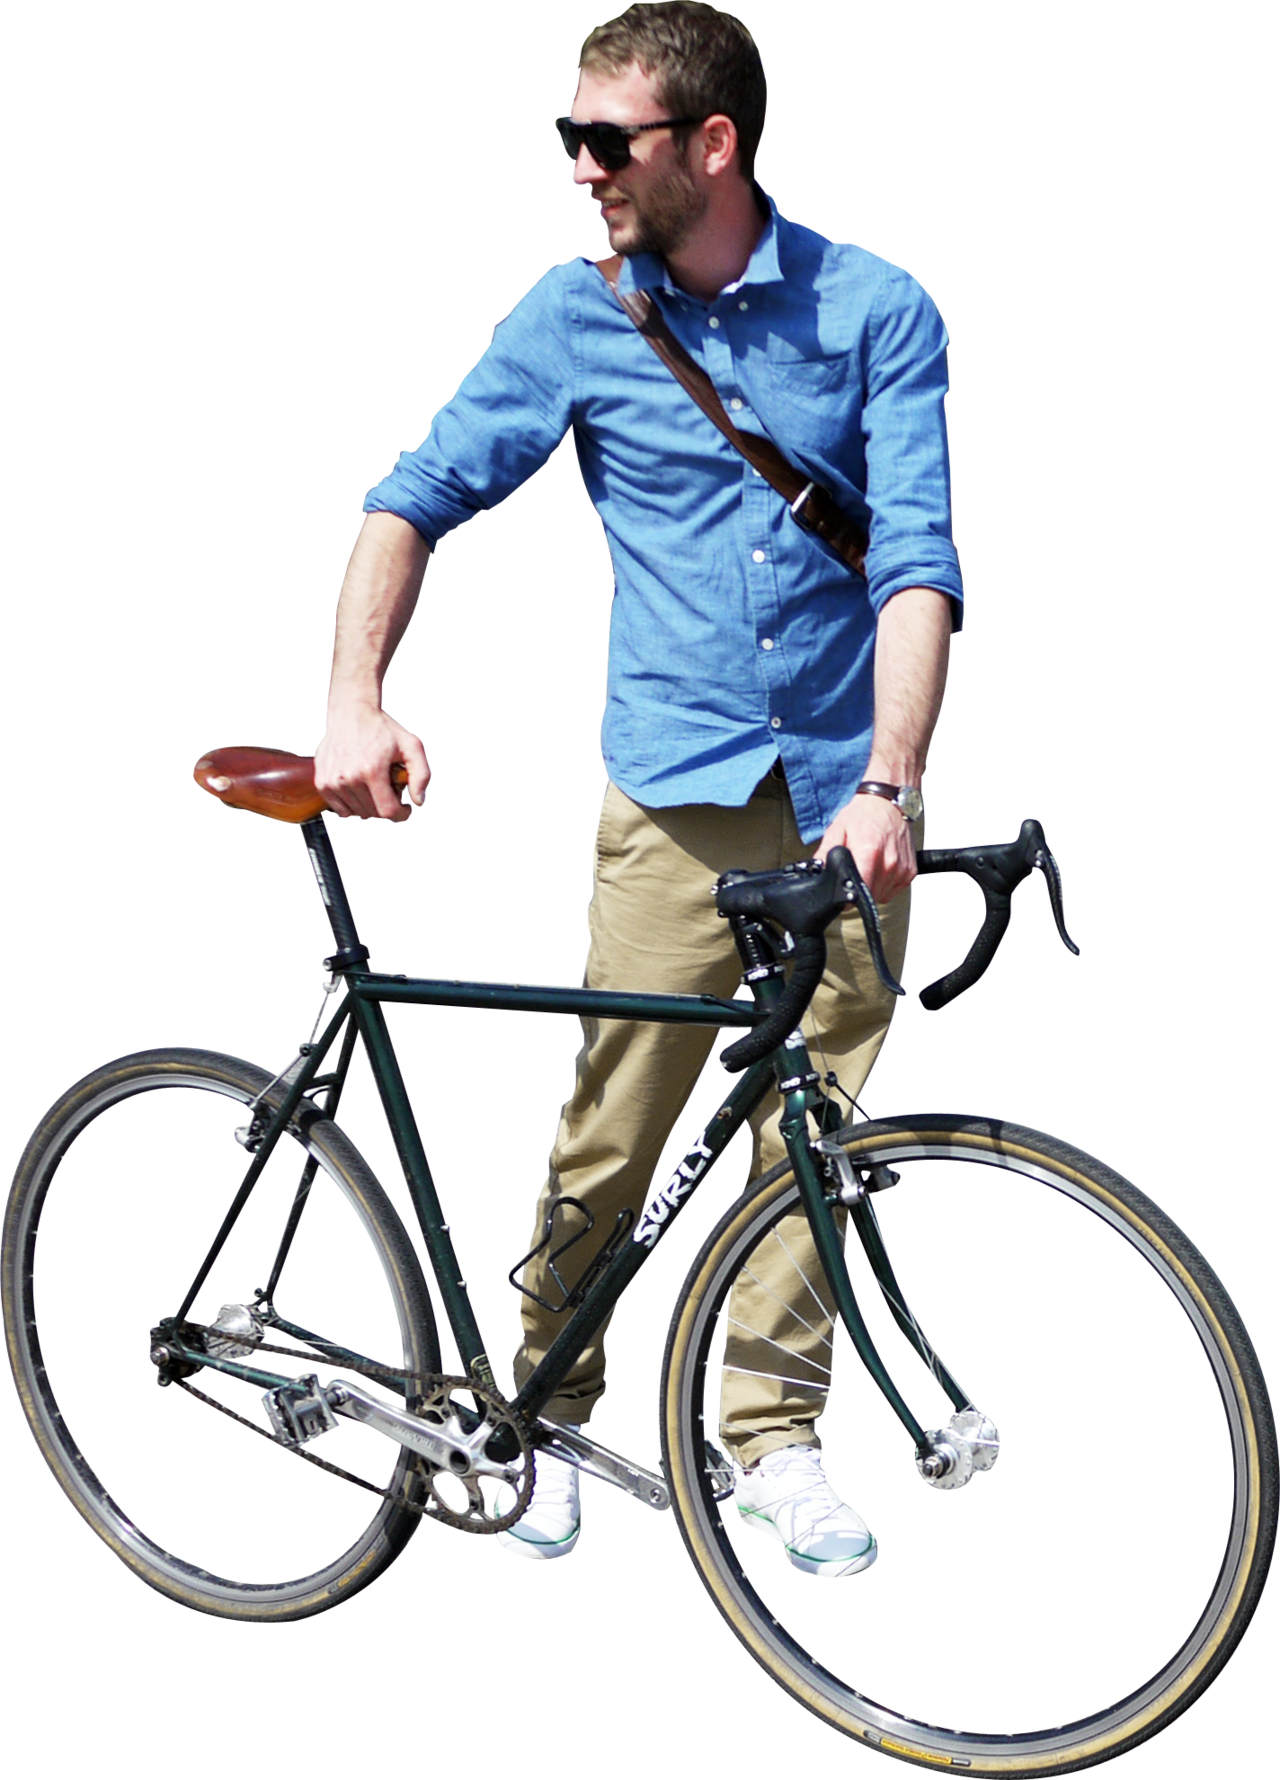 17 Photoshop Cut Out Cyclist Images